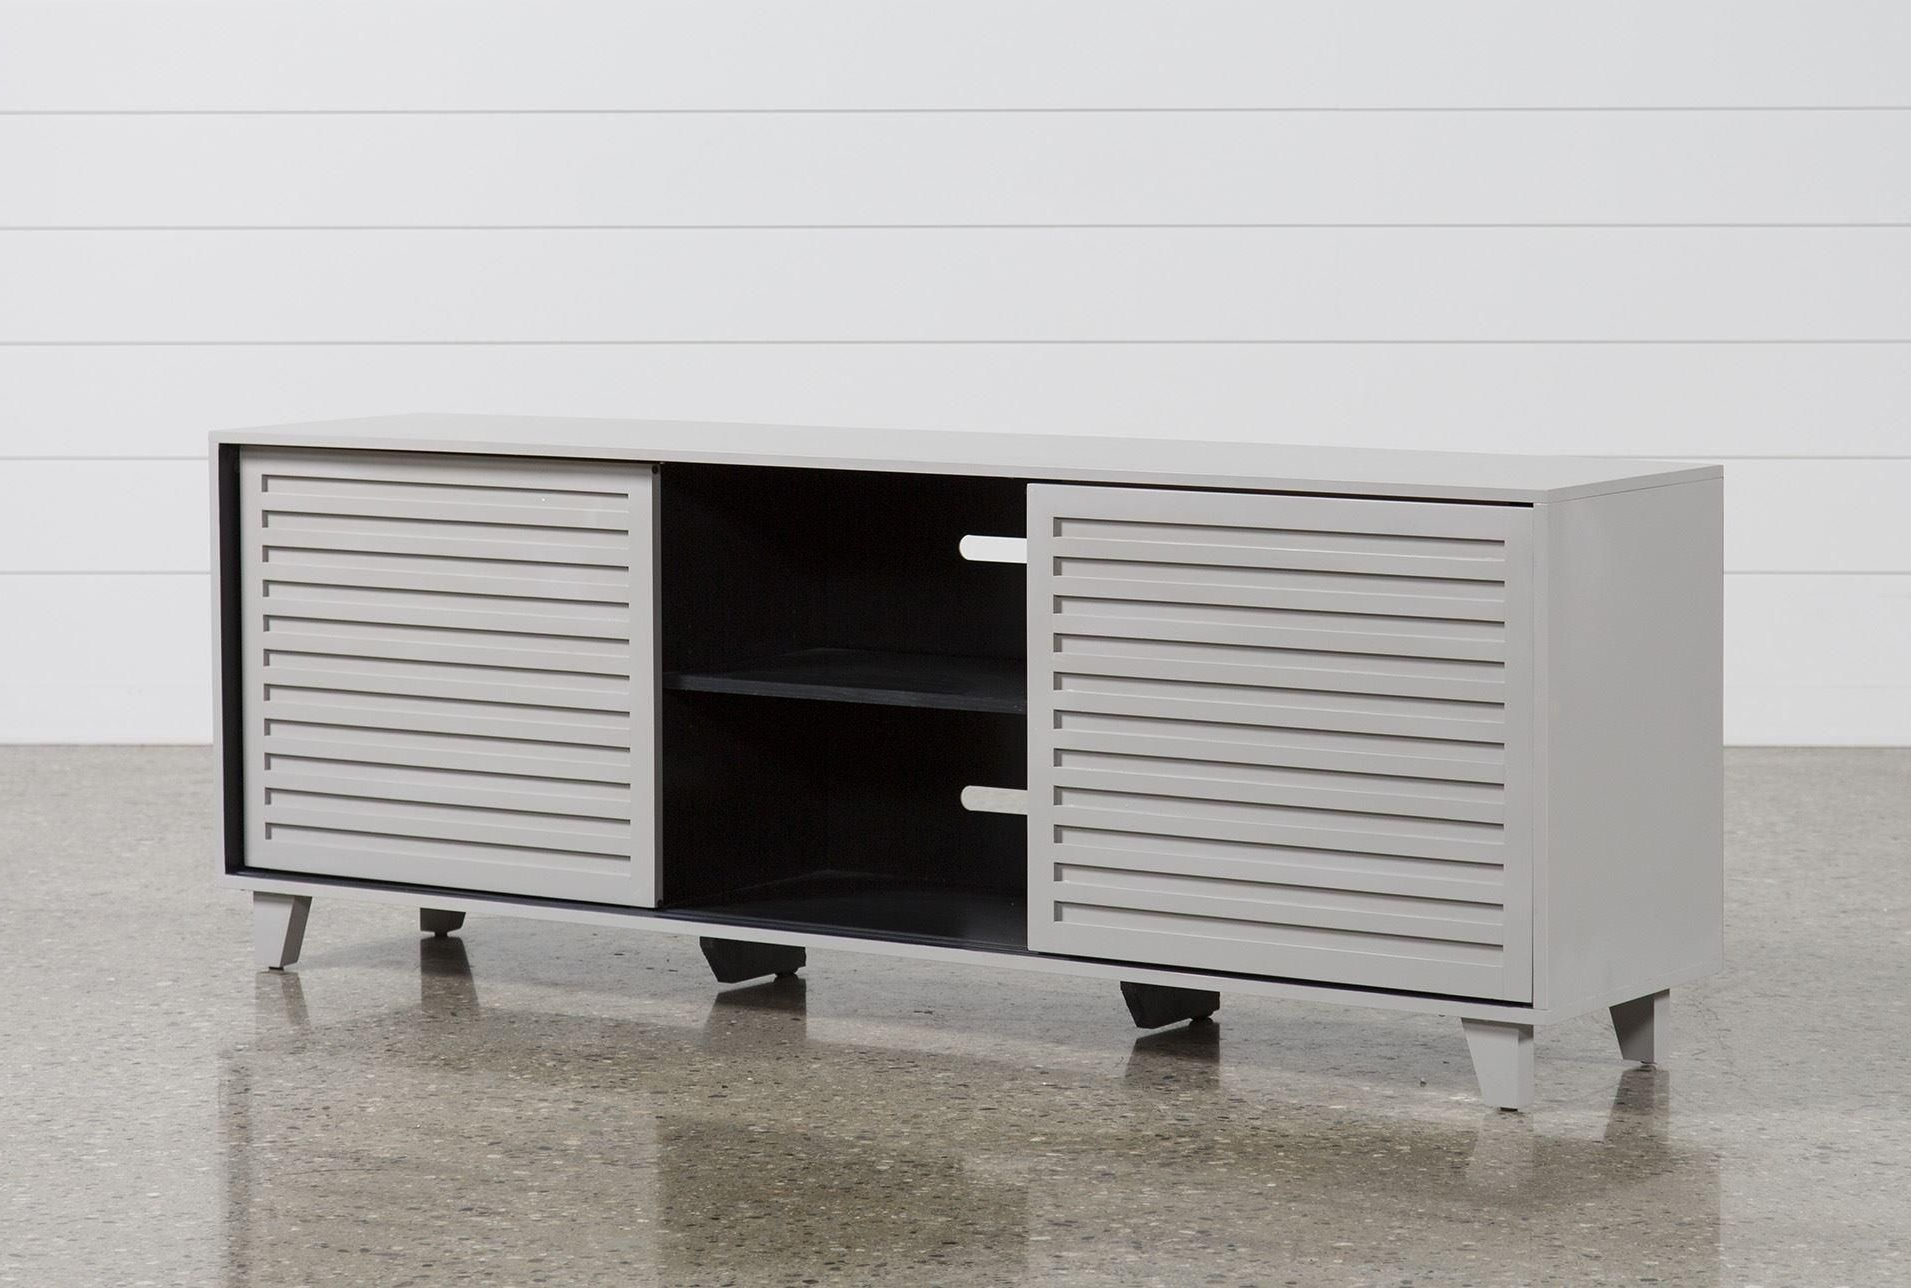 Heath 80 Inch Tv Stand | Home | Pinterest | 80 Inch Tvs, Tv Stands Inside Combs 63 Inch Tv Stands (View 2 of 20)